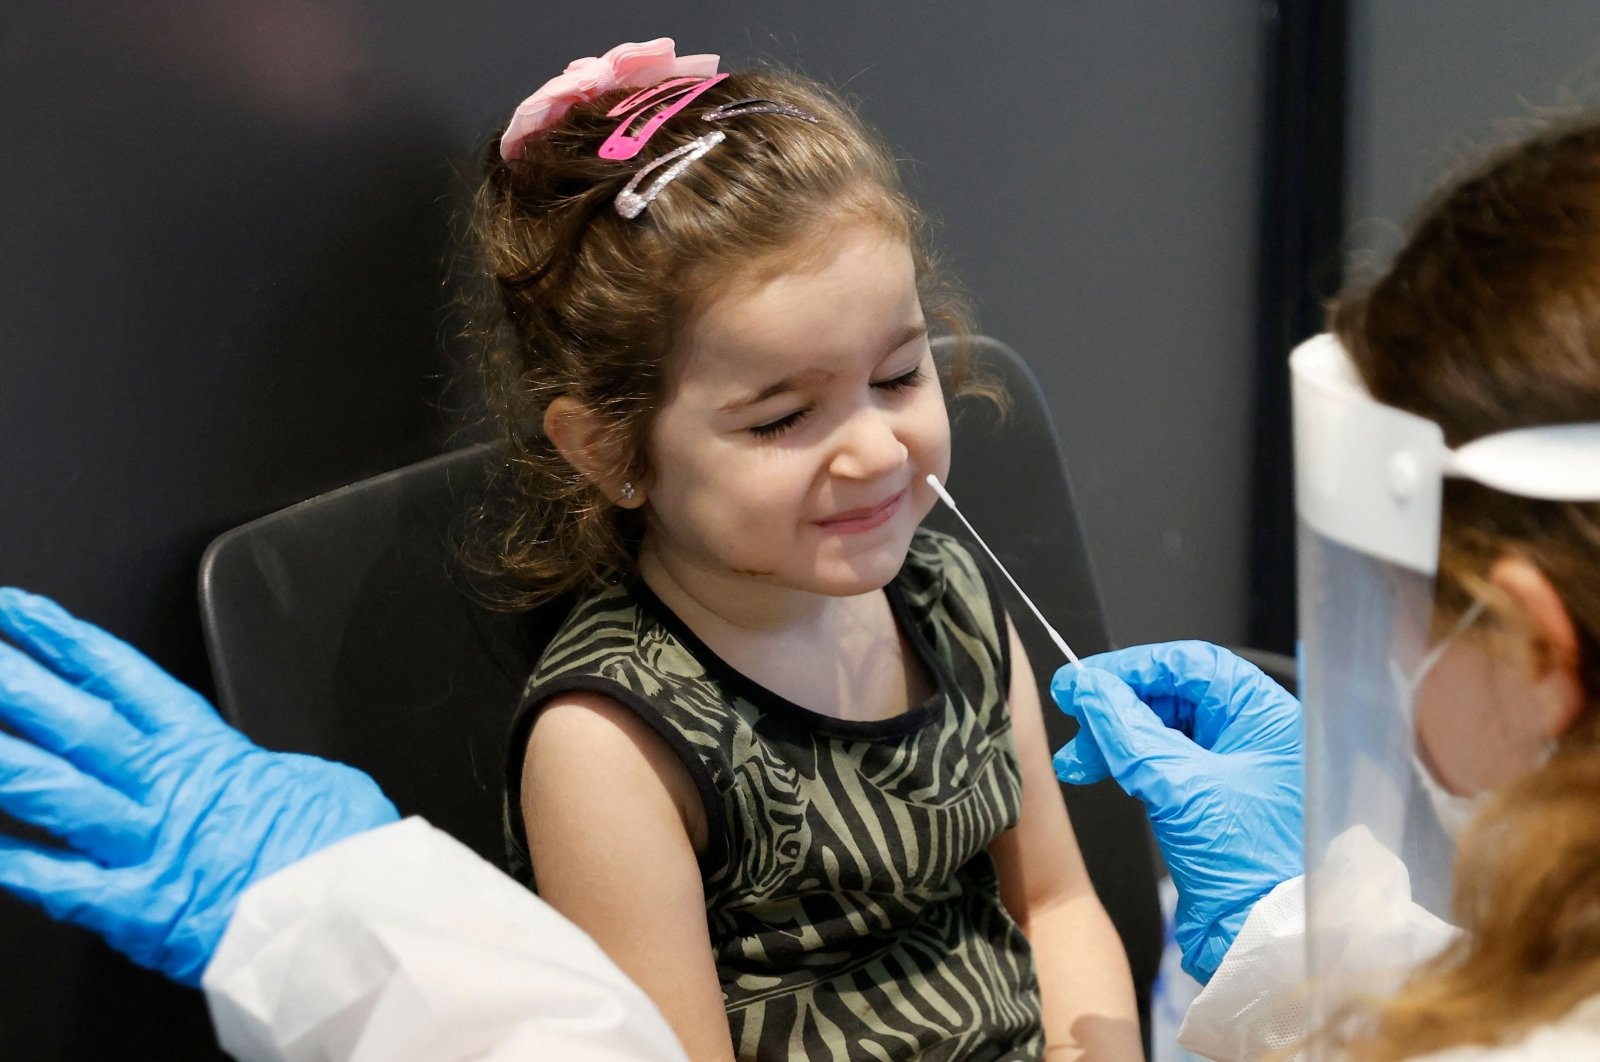 """An Israeli child undergoes an antigen test in order to visit the """"LEGO Space Park"""" exhibition in the Israeli coastal city of Tel Aviv, Aug. 19, 2021. (AFP Photo)"""